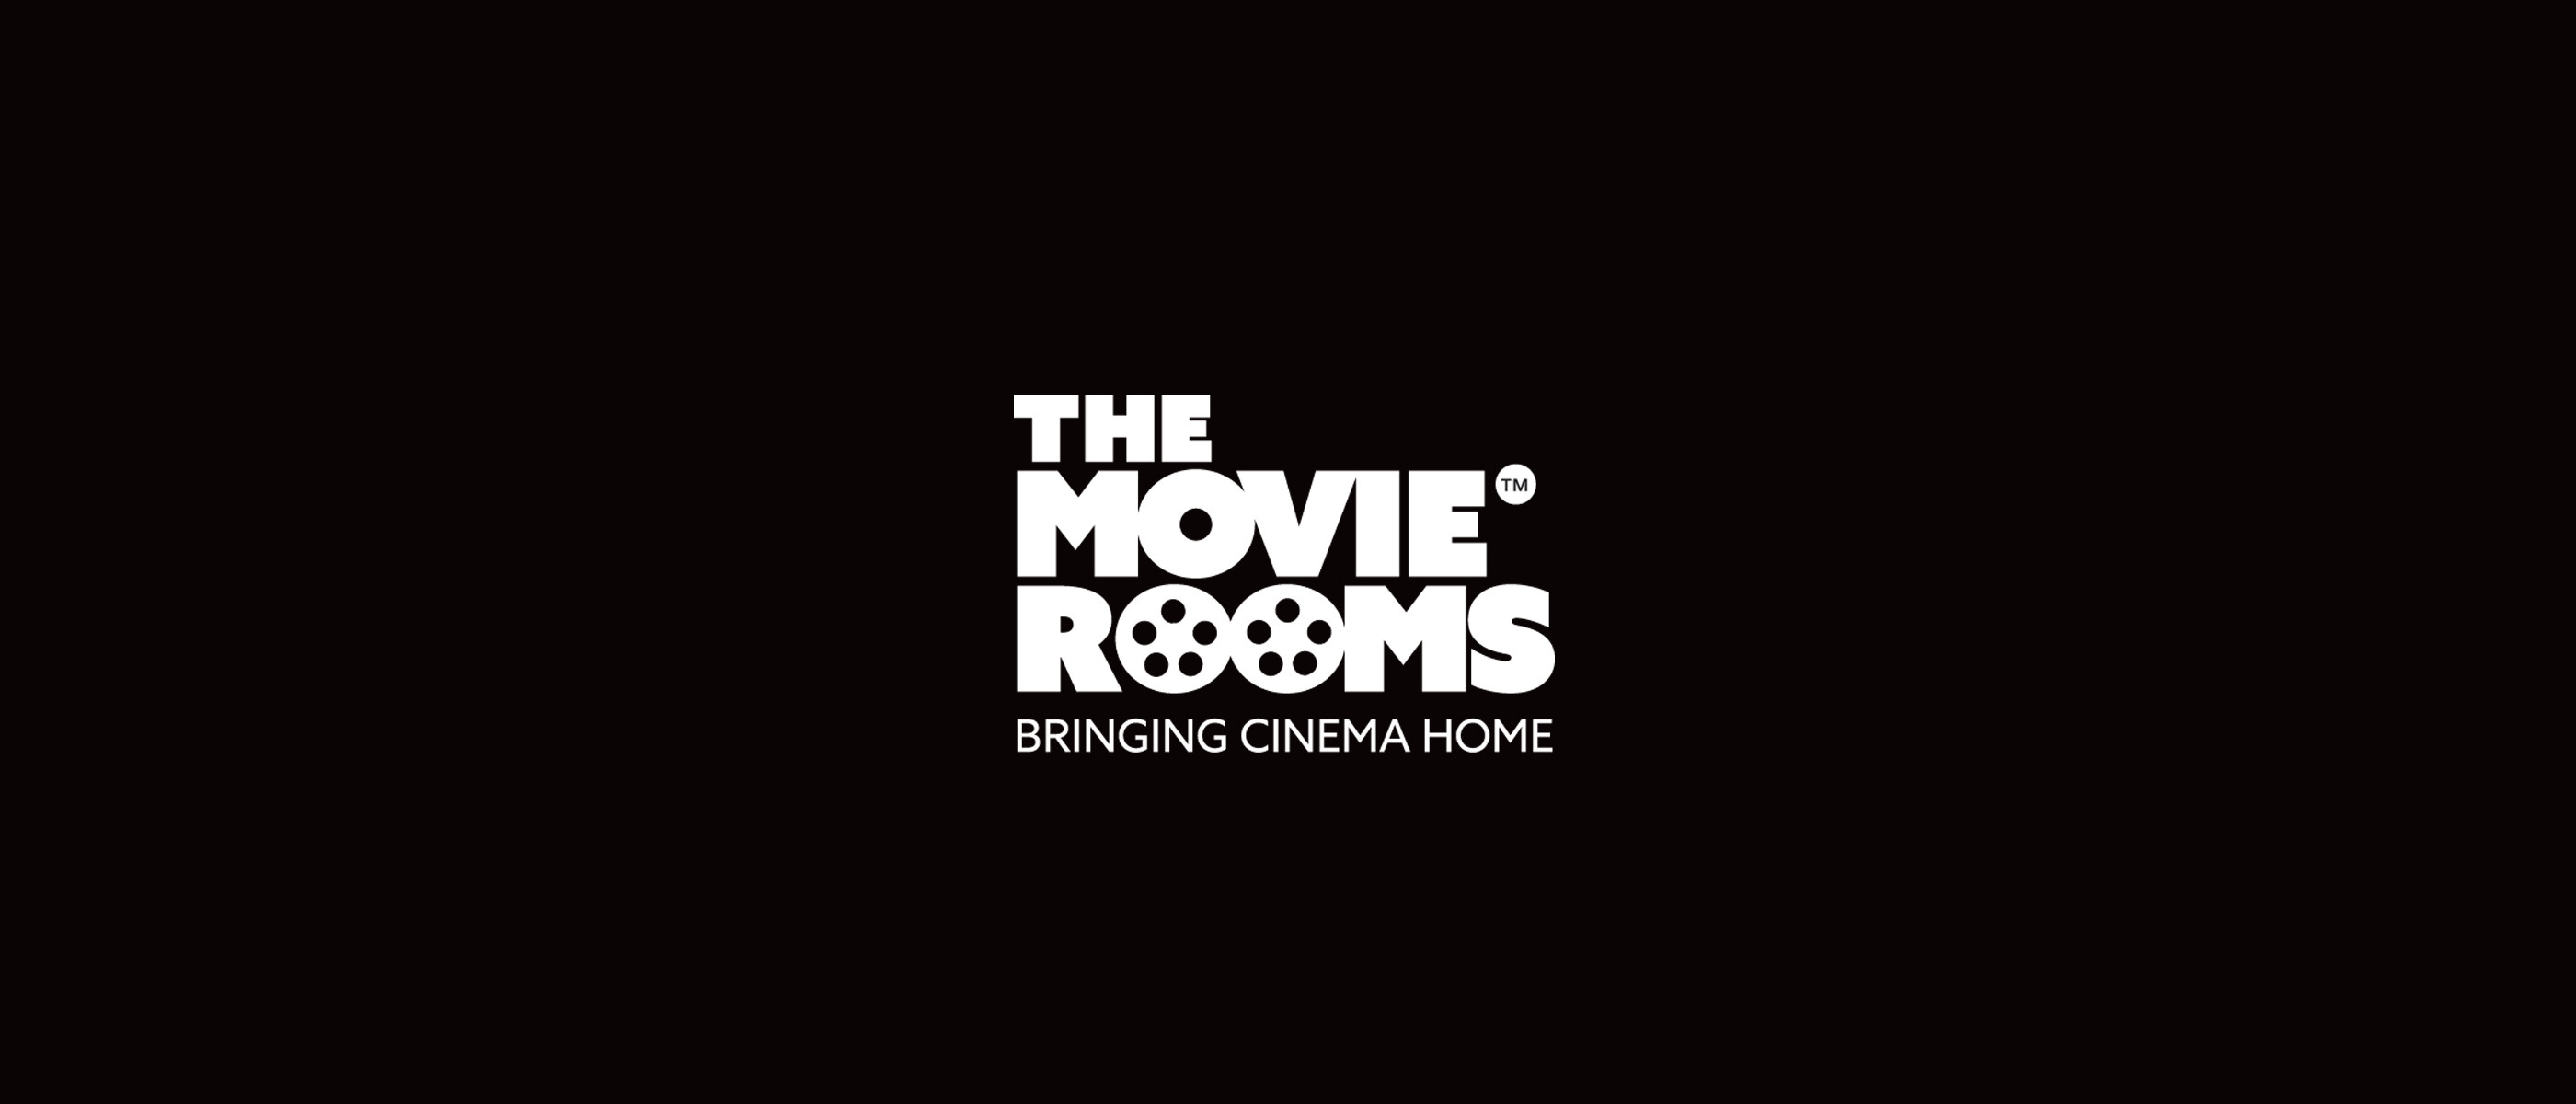 The Movie Rooms